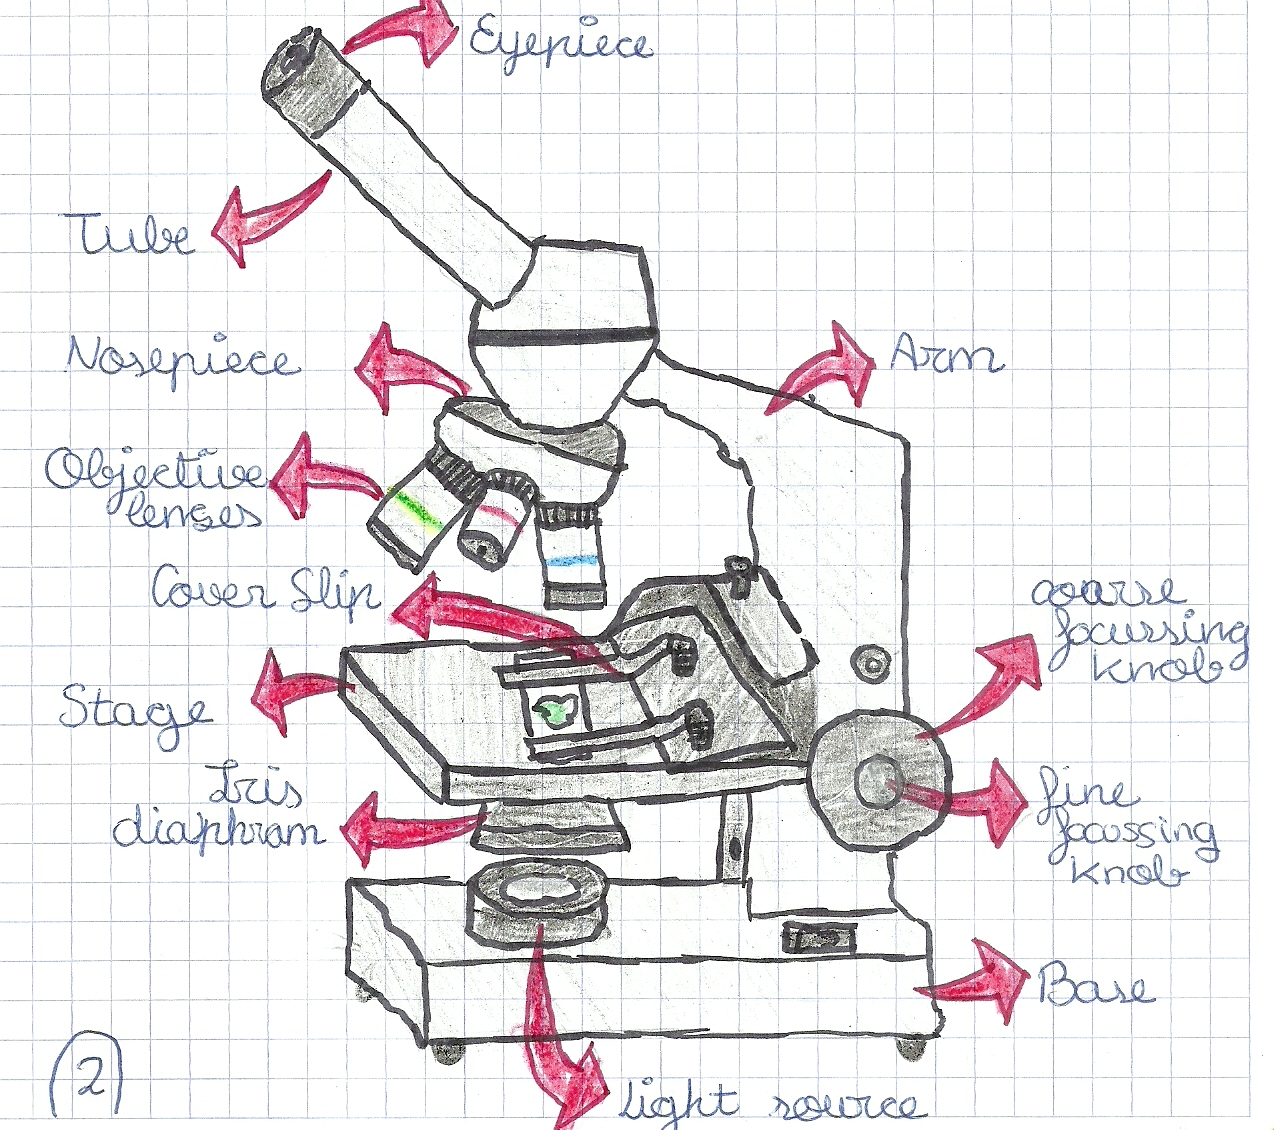 Blog De Aula De 1o 2o Eso Ies T M Using The Microscope